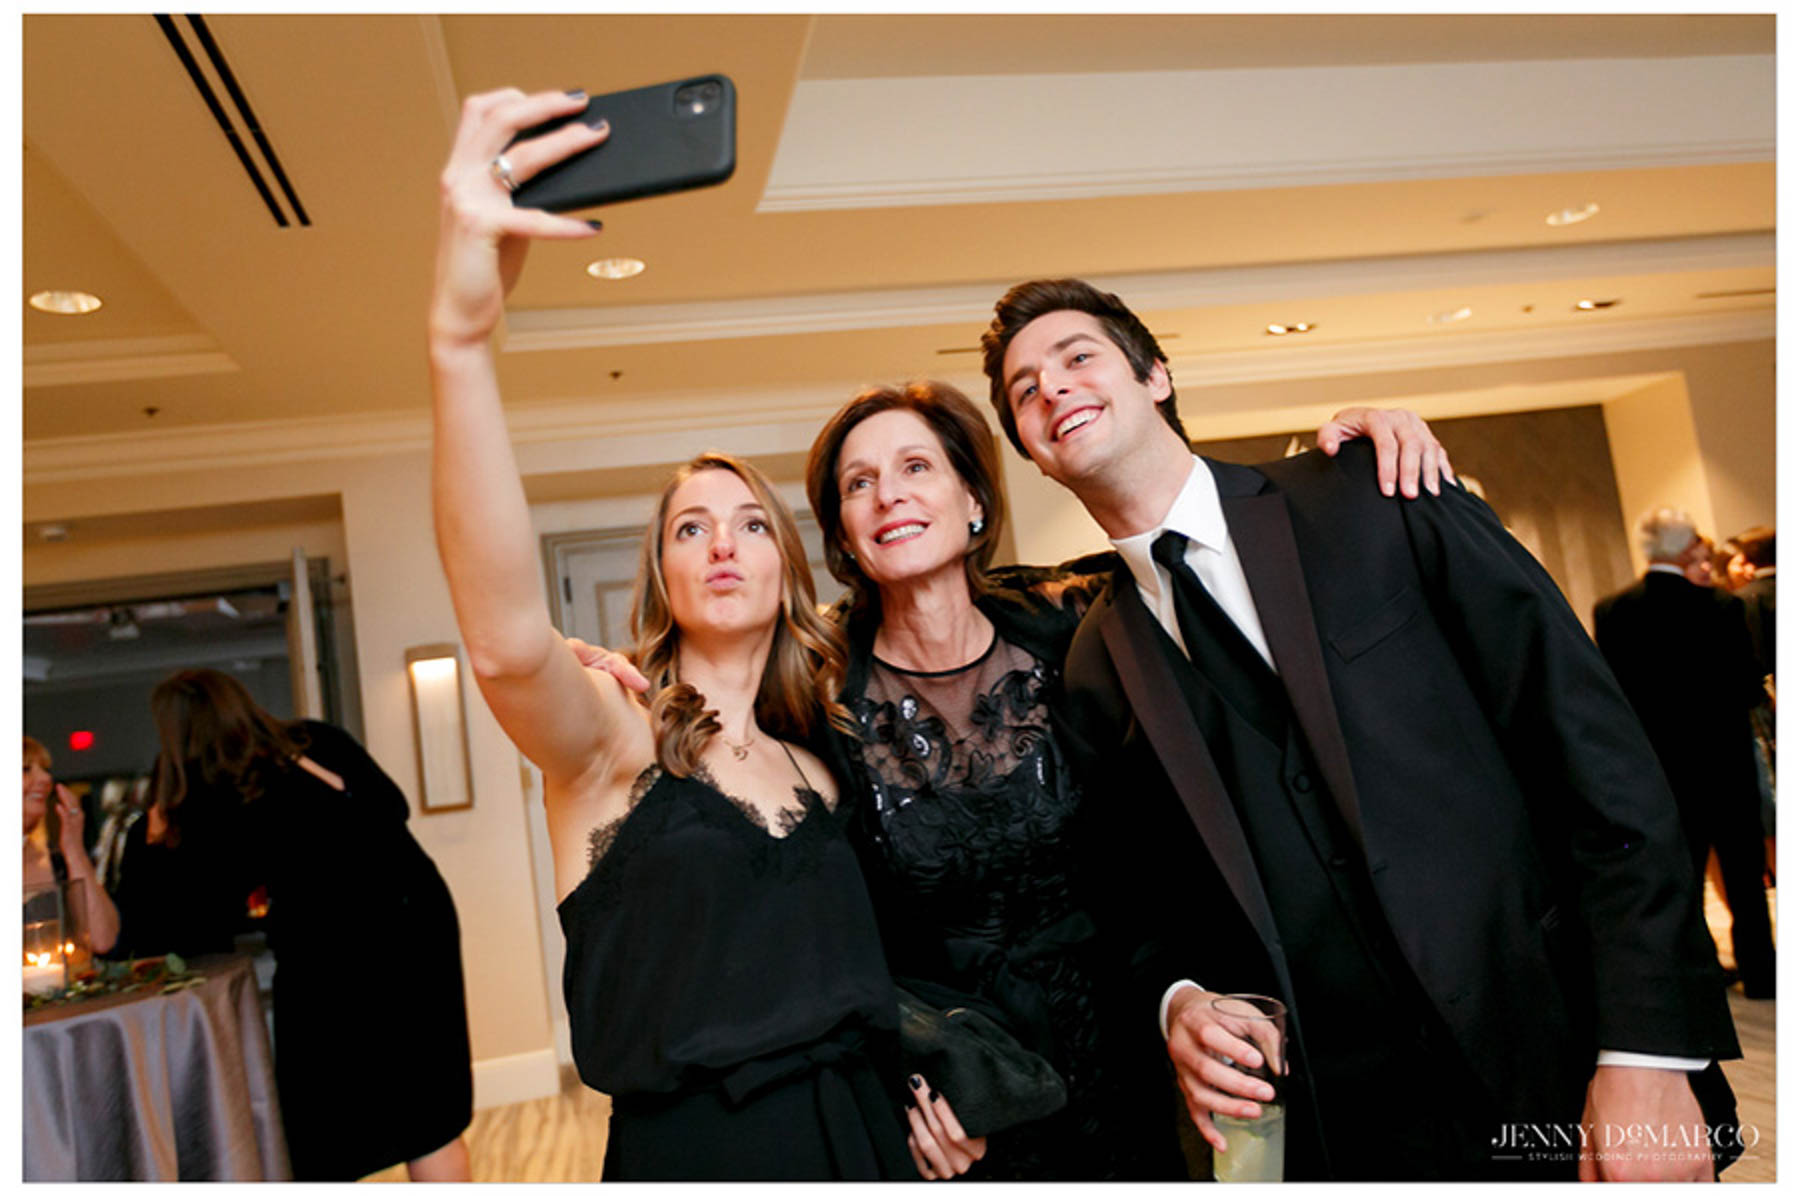 family members take a selfie on an iPhone during the reception